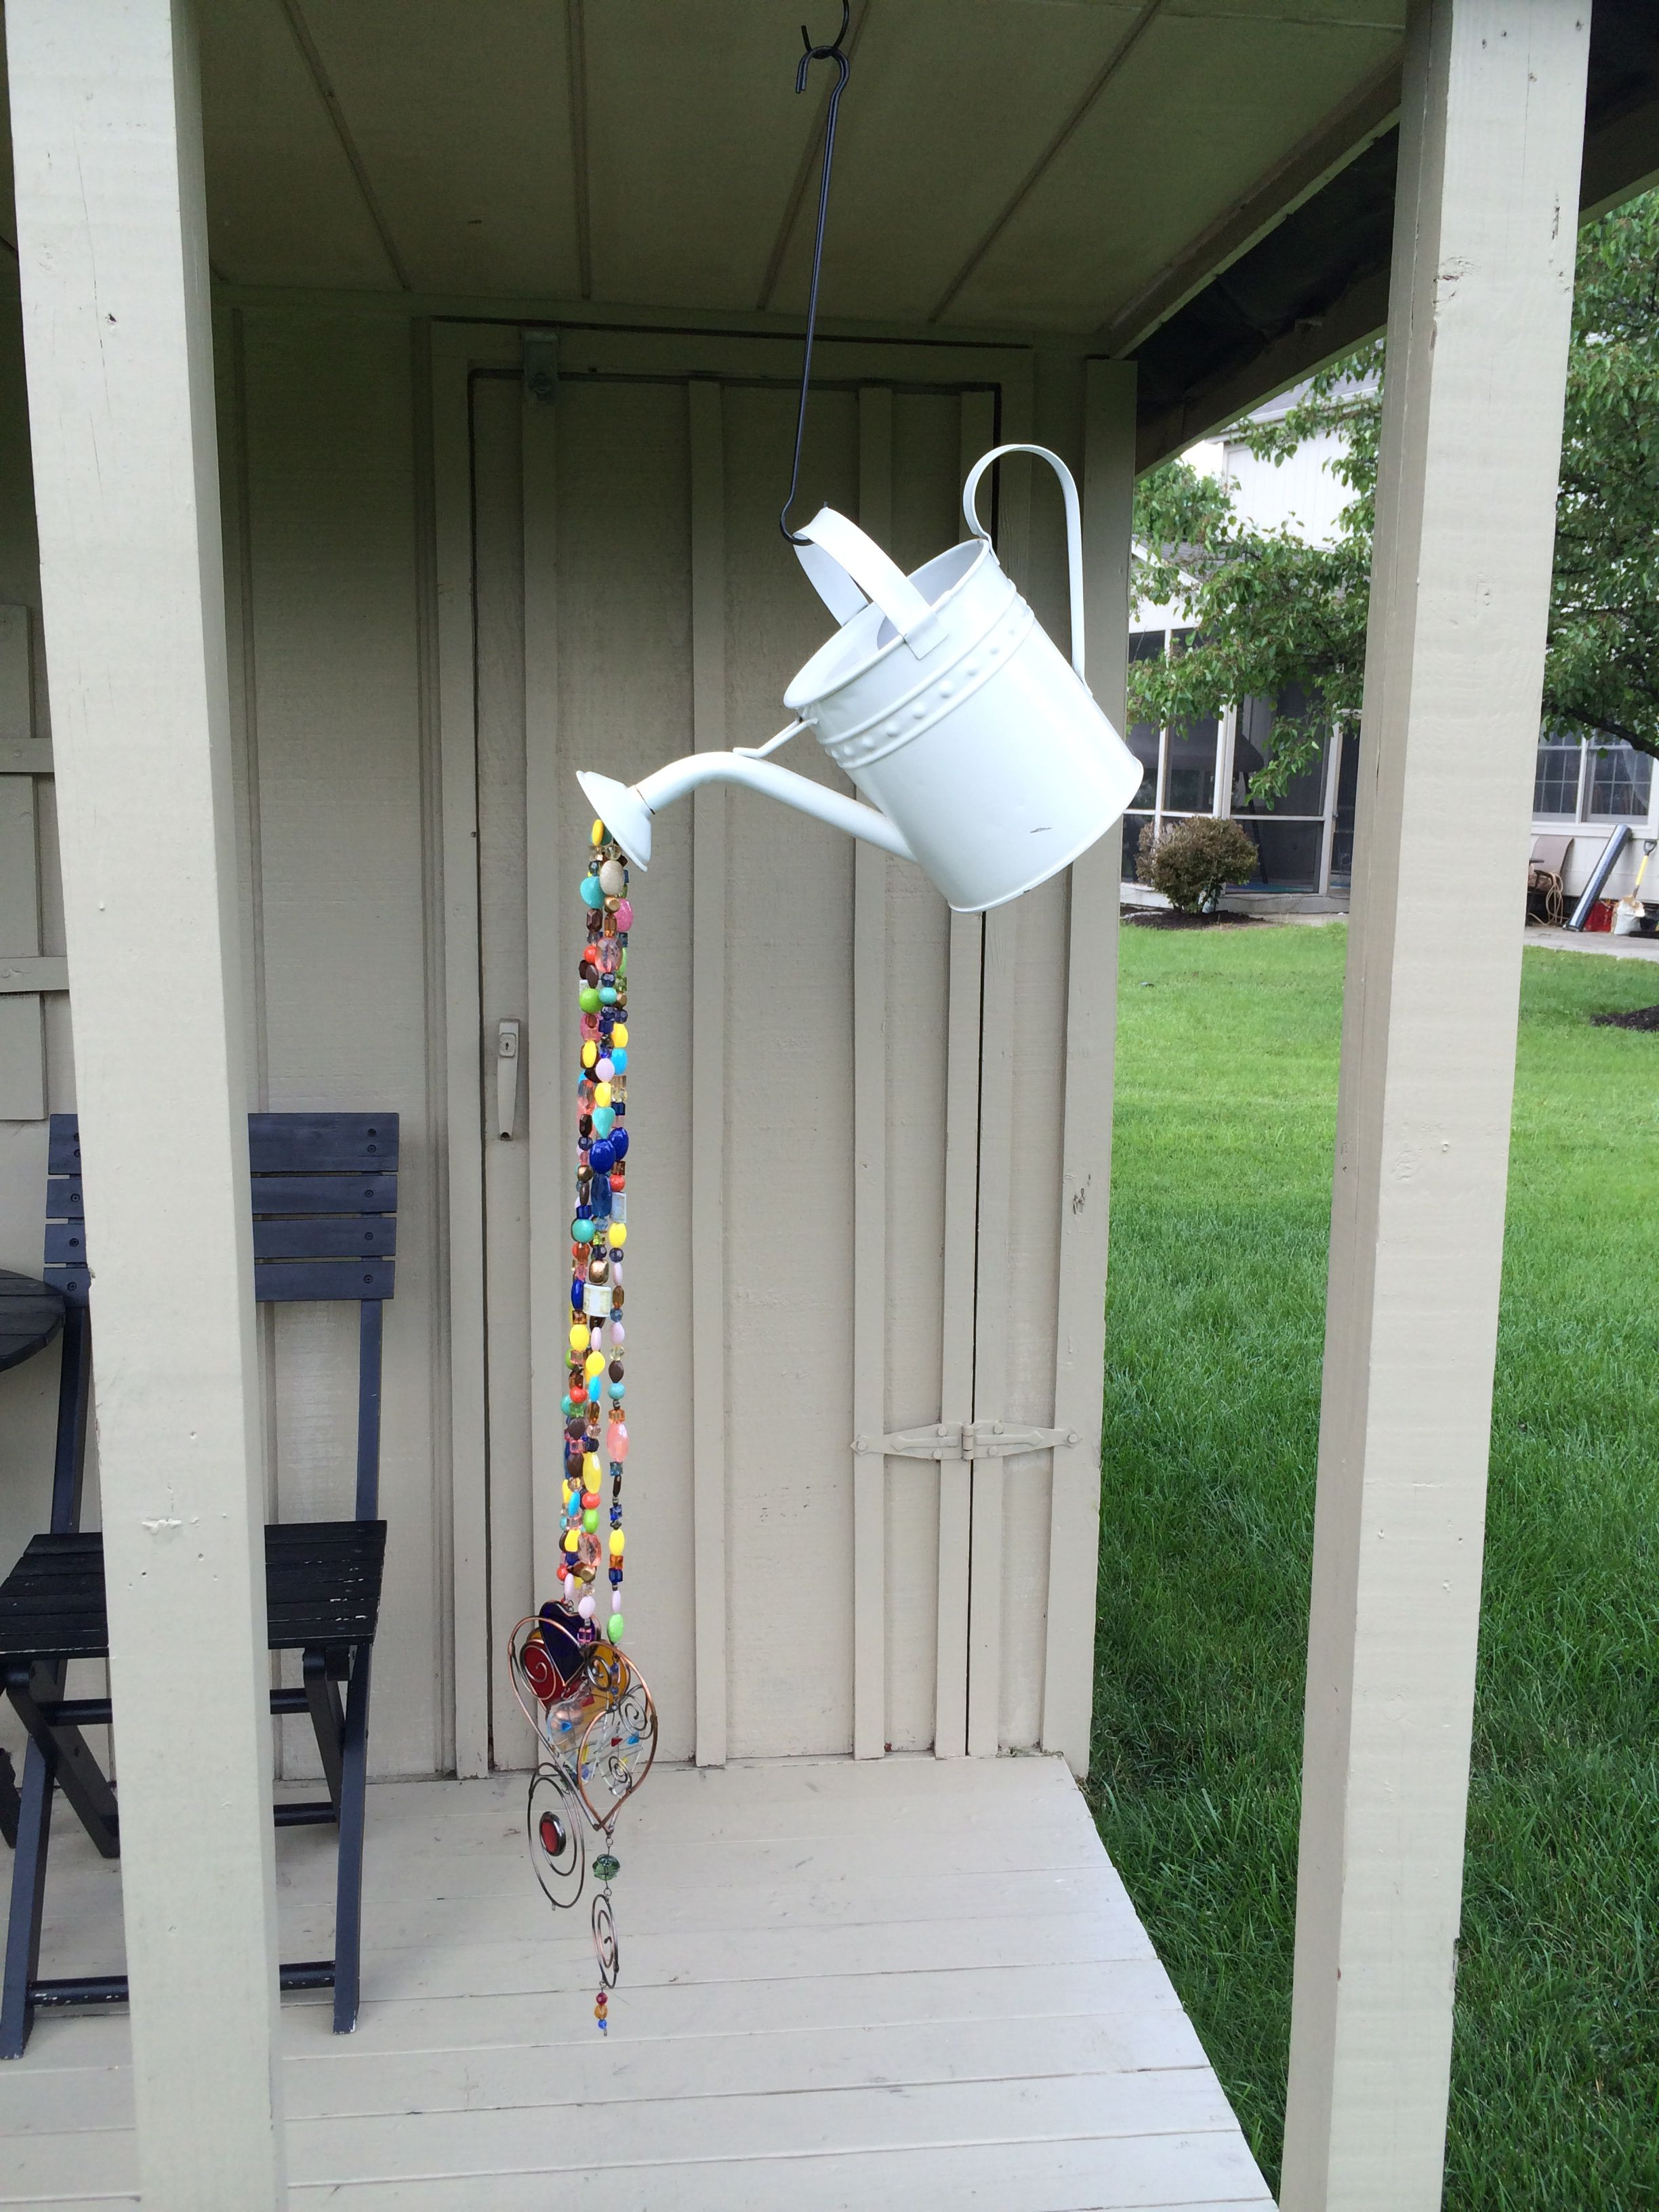 Homemade wind chime from watering can and beads